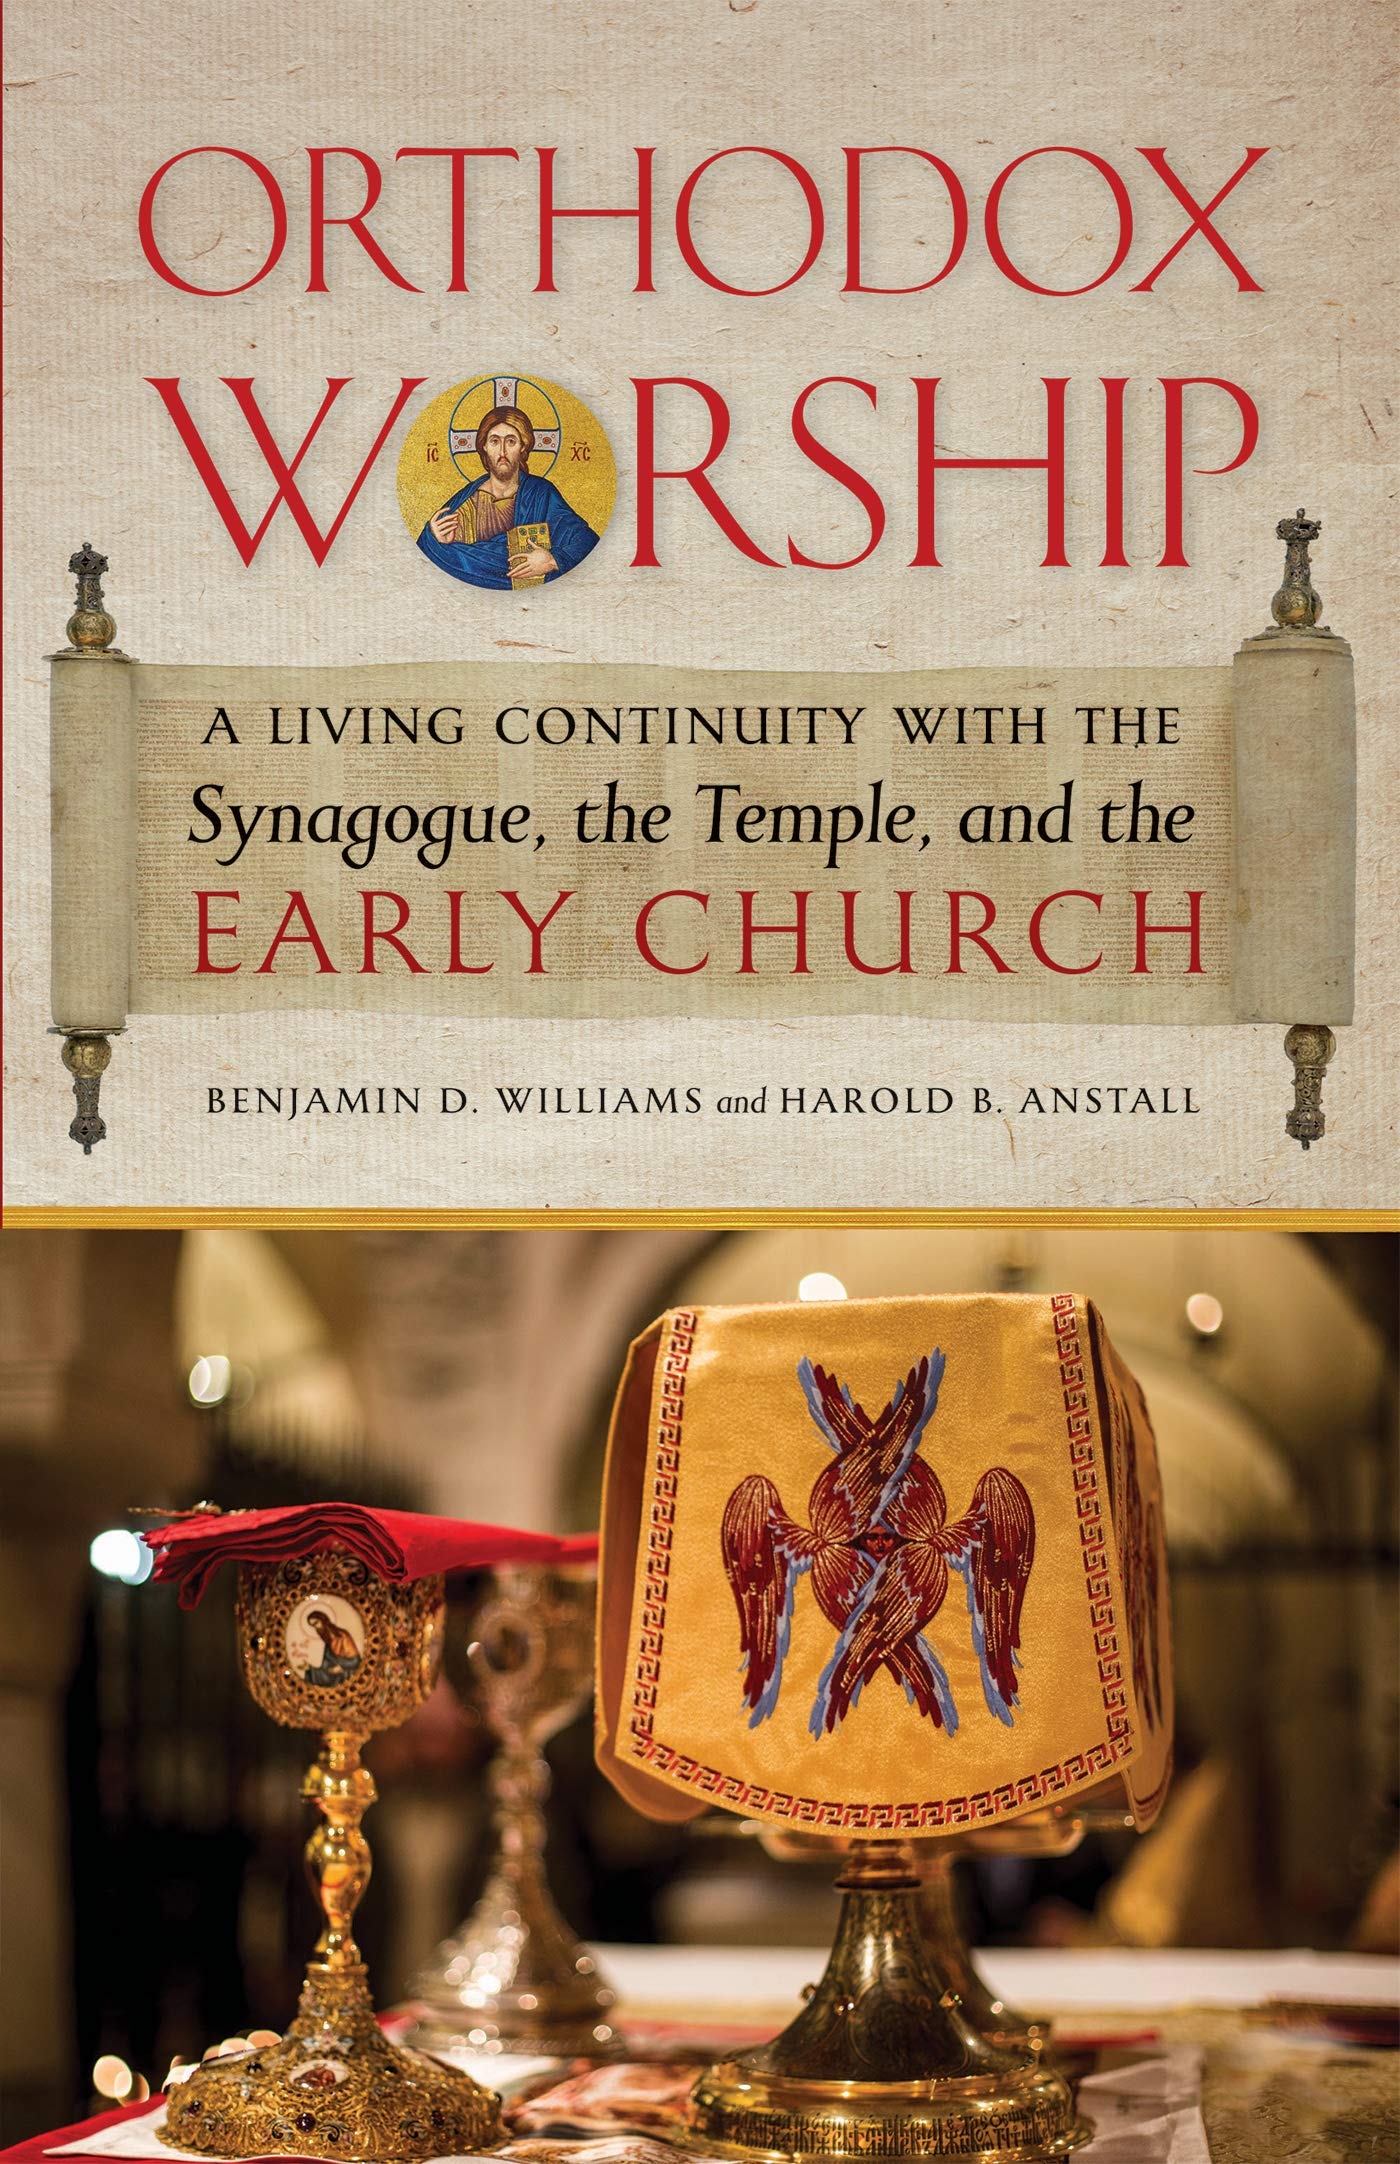 A Living Continuity with the Synagogue, the Temple, and the Early Church - Benjamin D. Williams, Harold B. Anstall